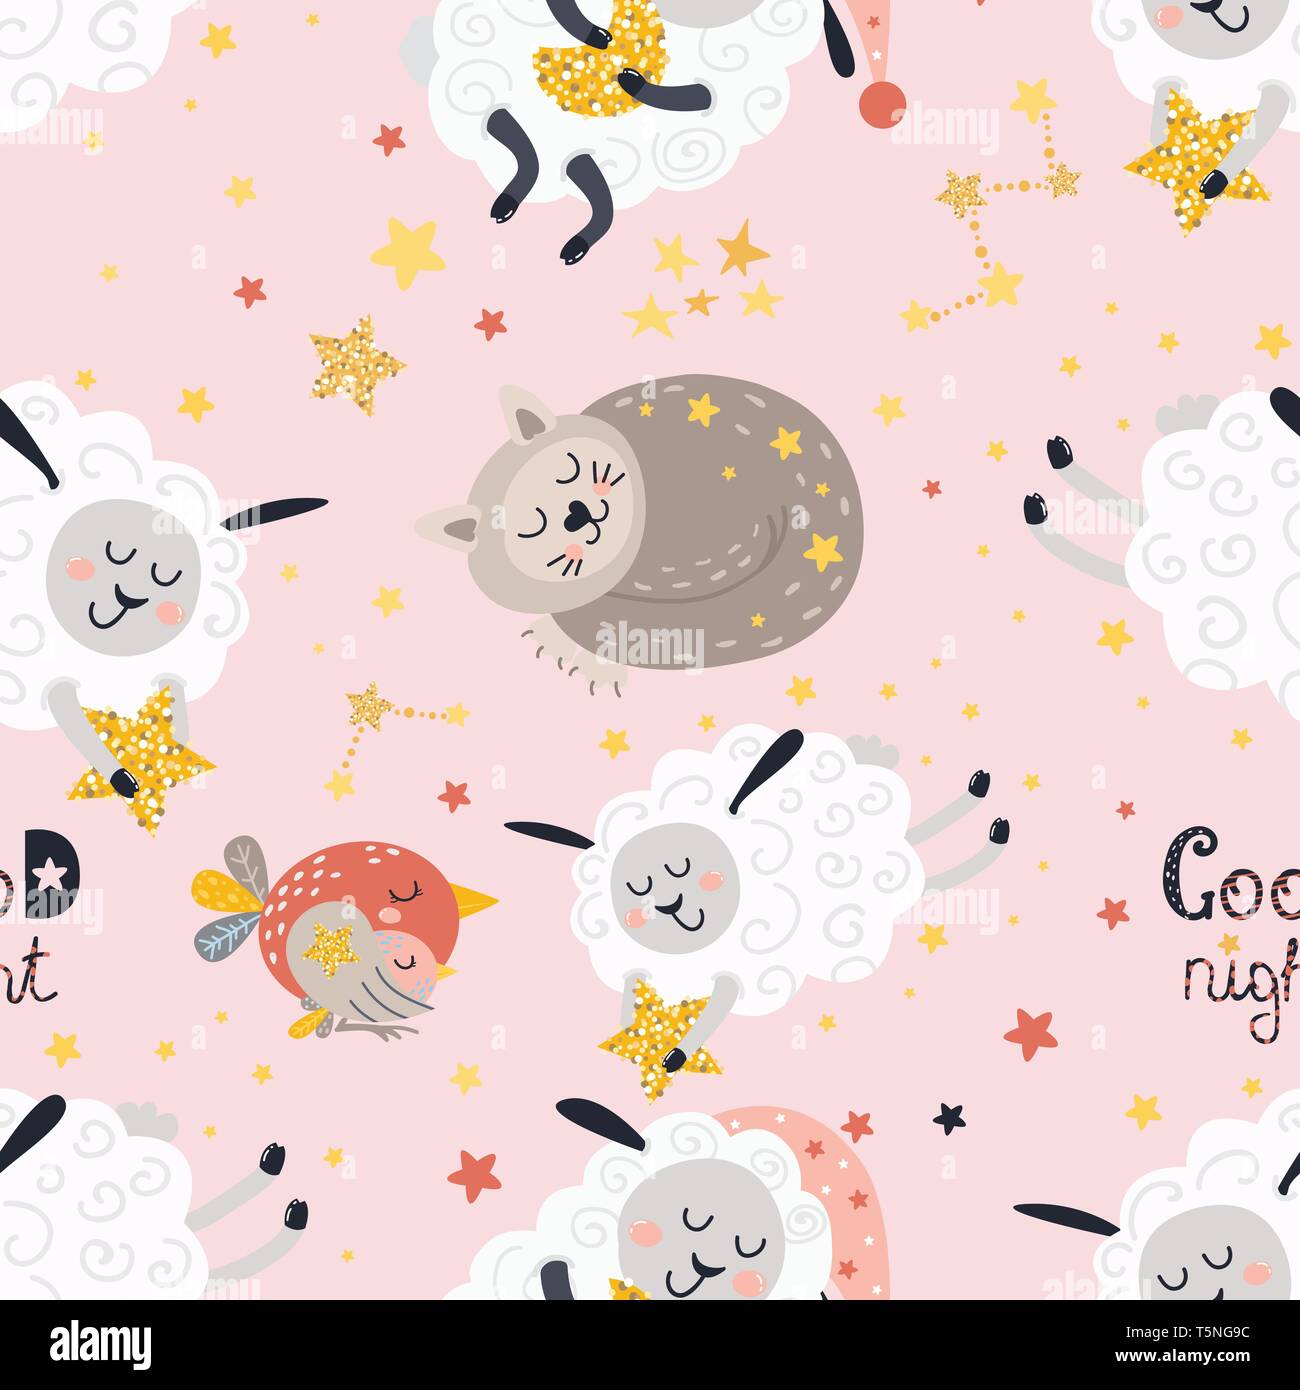 Seamless pattern for girls with sleeping animals - Stock Vector